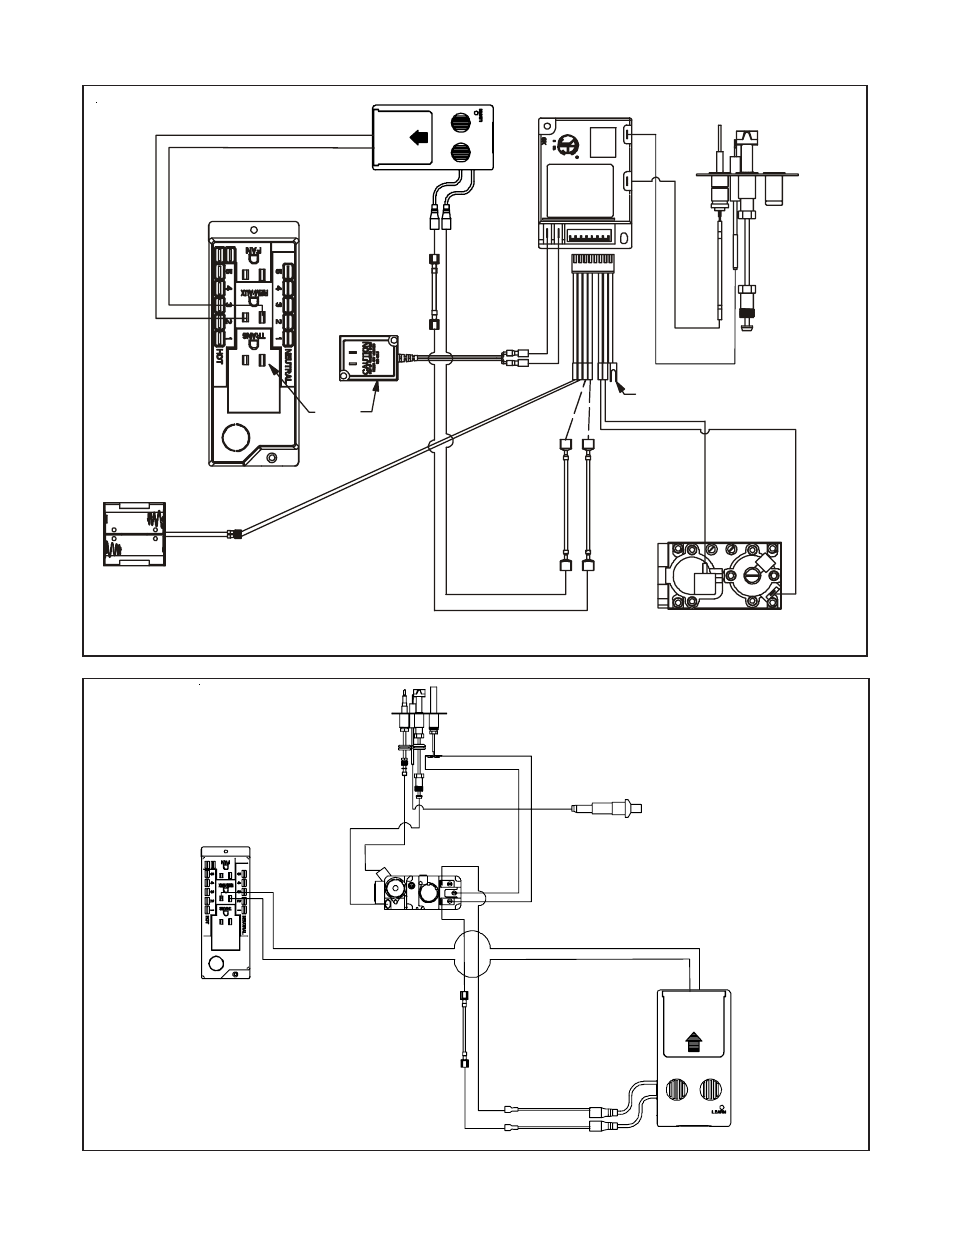 110v plug wiring diagram uk wiring diagrams pictures